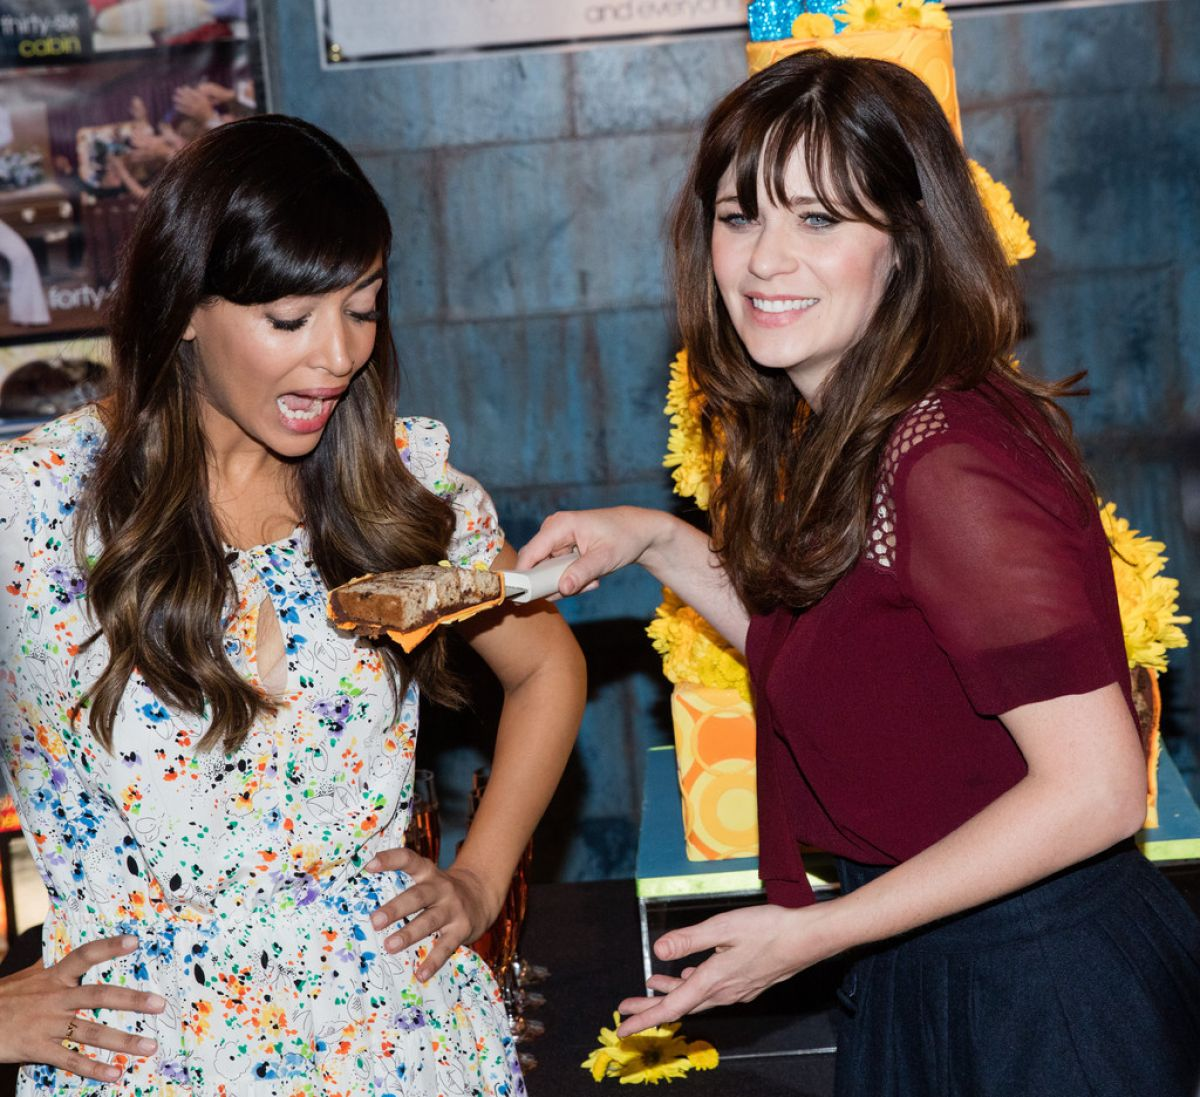 zooey-deschanel-and-hannah-simone-at-new-girl-100th-wpisode-cake-cutting-in-culver-city-12-02-2015_3